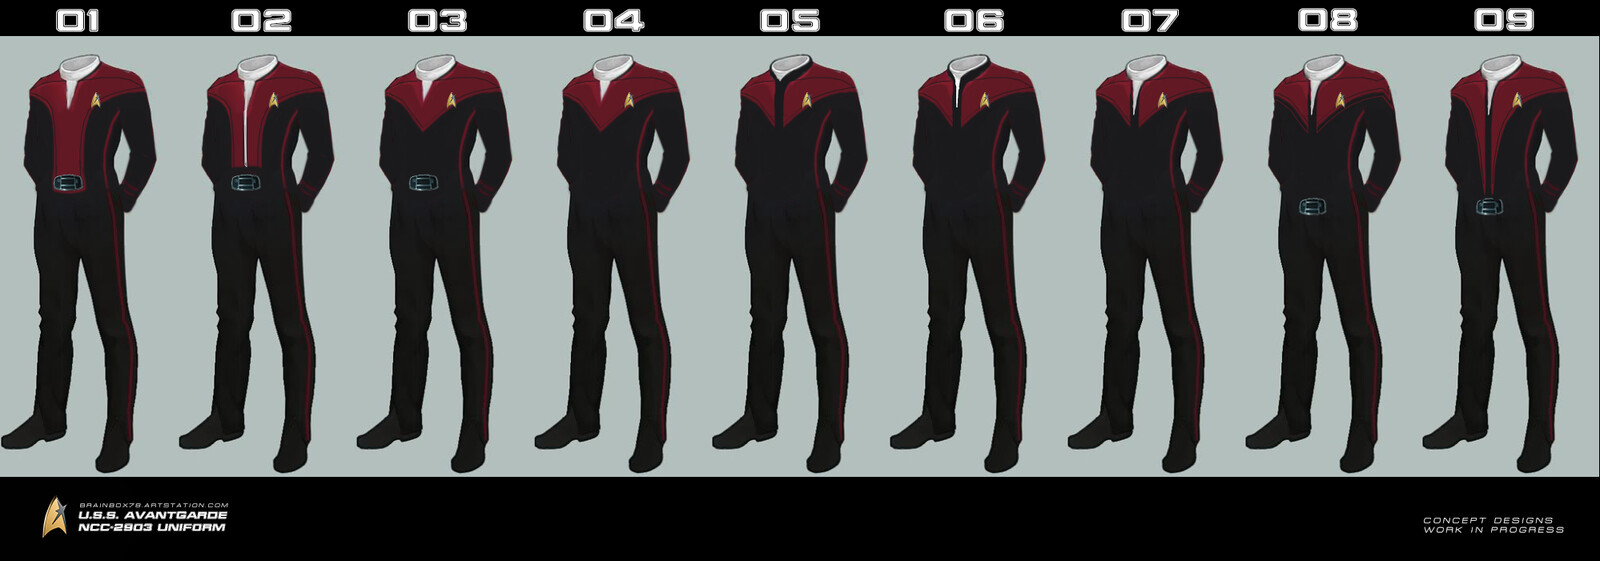 U.S.S. AVANTGARDE NCC-2903 UNIFORM CONCEPT DESIGNS